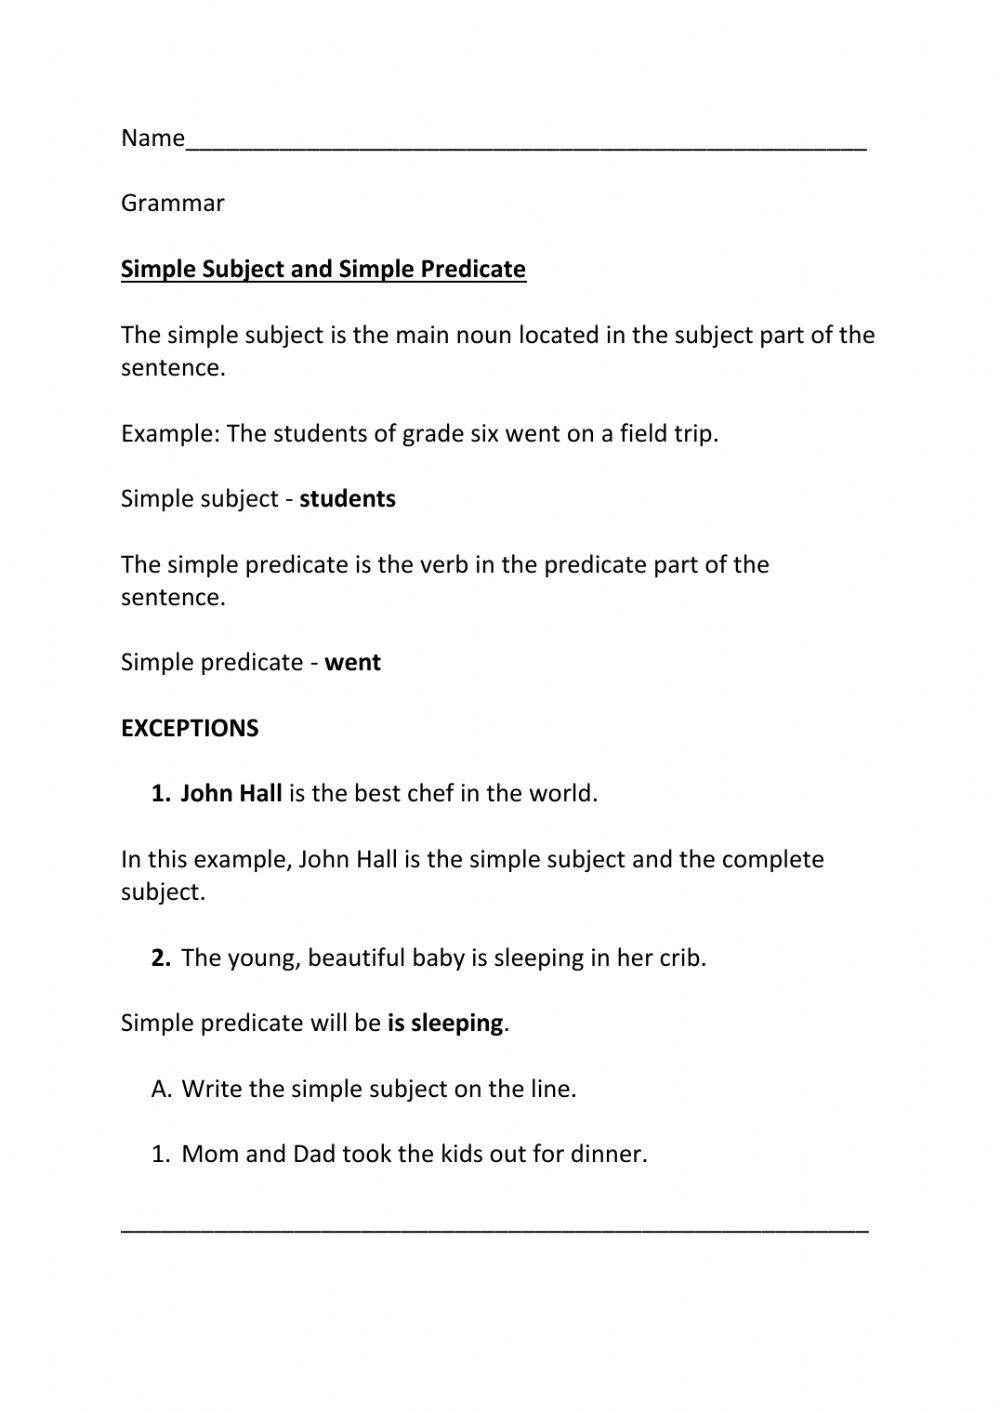 Complete Subject and Predicate Worksheet